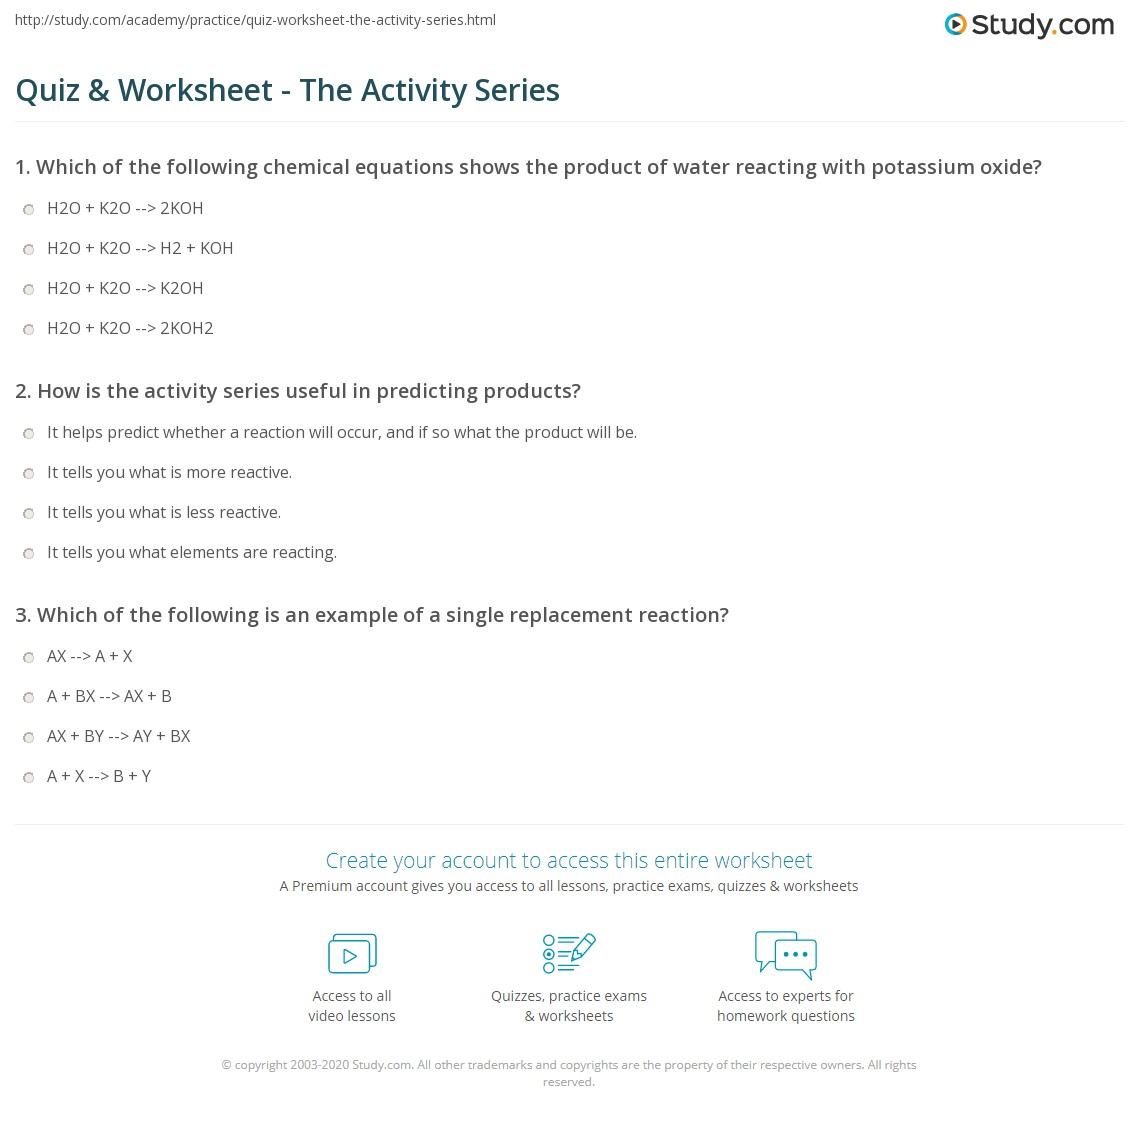 Aldiablosus  Fascinating Quiz Amp Worksheet  The Activity Series  Studycom With Gorgeous Print The Activity Series Predicting Products Of Single Displacement Reactions Worksheet With Lovely Math Worksheets For Th Grade To Print Also Right Angle Worksheets In Addition Telling Time To Five Minutes Worksheet And Th Grade English Grammar Worksheets As Well As Get Out Of Debt Worksheet Additionally Codependency Worksheets From Studycom With Aldiablosus  Gorgeous Quiz Amp Worksheet  The Activity Series  Studycom With Lovely Print The Activity Series Predicting Products Of Single Displacement Reactions Worksheet And Fascinating Math Worksheets For Th Grade To Print Also Right Angle Worksheets In Addition Telling Time To Five Minutes Worksheet From Studycom